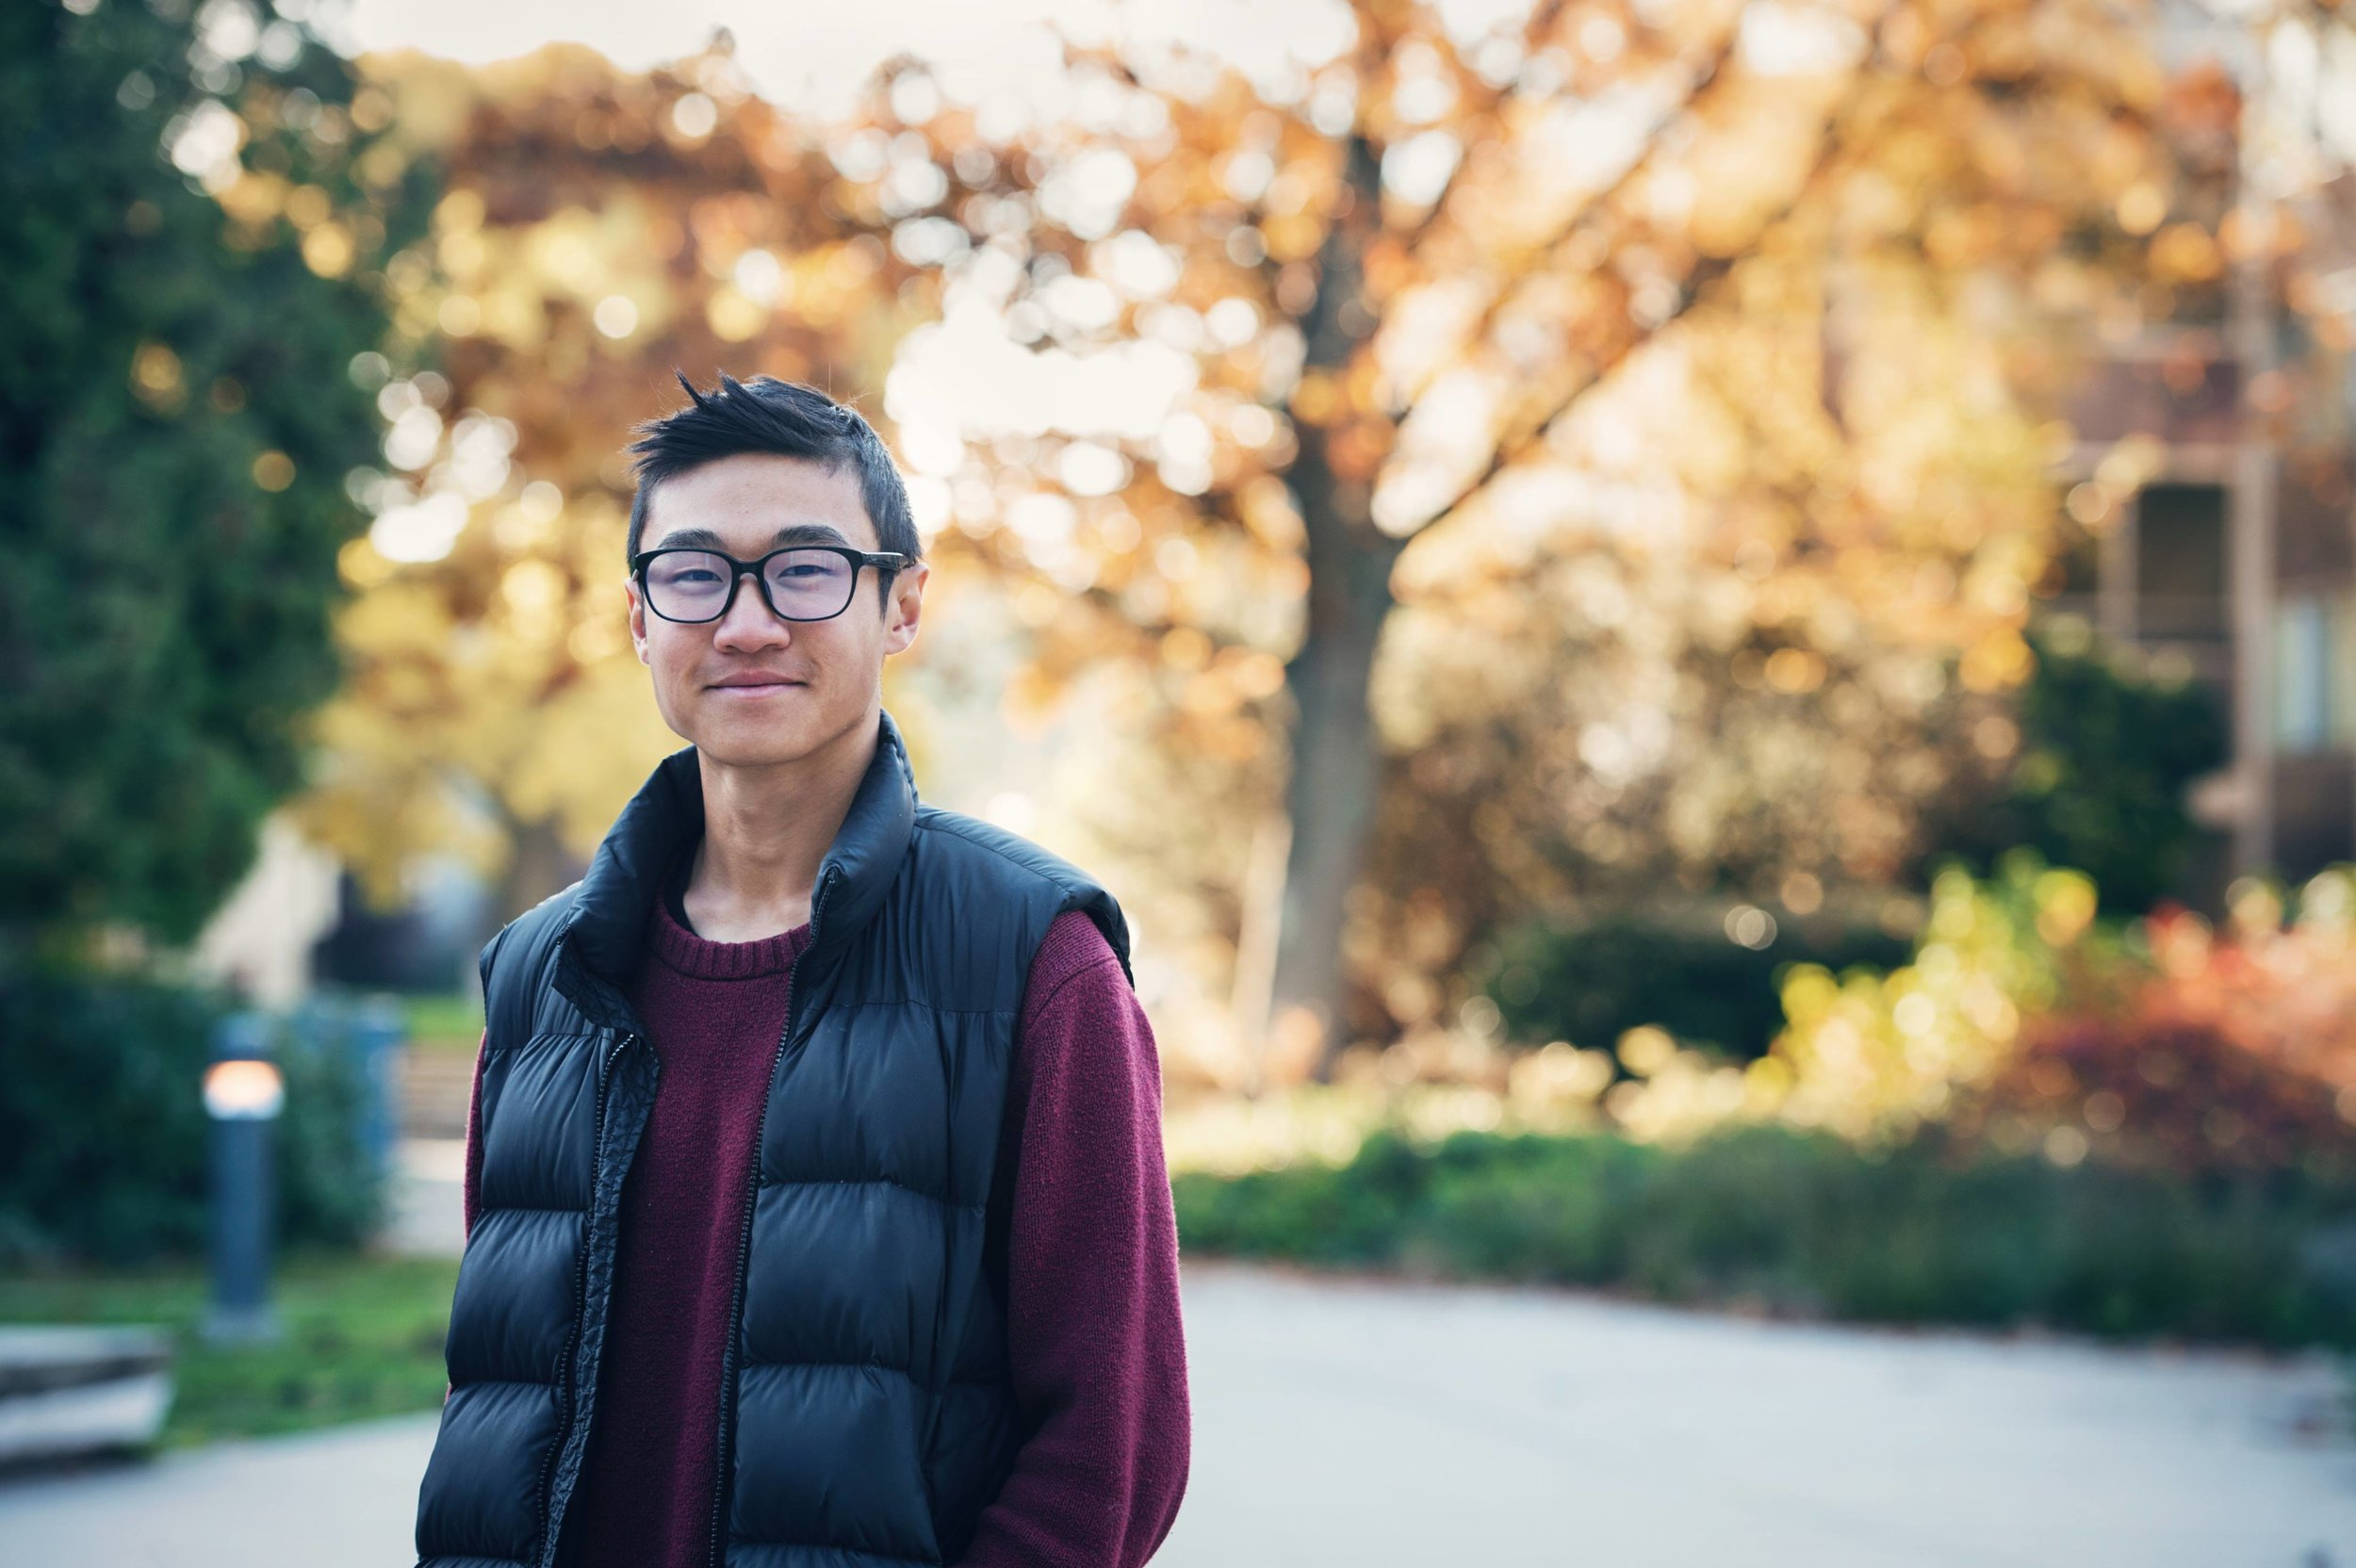 Regan currently attends the University of British Columbia, and is one of the co-founders of Bumpin Bakery. He completes administrative tasks such as donor relations, maintaining an online presence, and selecting student representatives of the organization. As he resides in Vancouver, Regan still attends Sunday handouts when possible and has witnessed the organization grow from humble beginnings into the operation it is today. His favourite part of Bumpin continues to be listening to, and connecting with the residents of Vancouver's Downtown east side at our Sunday handouts.